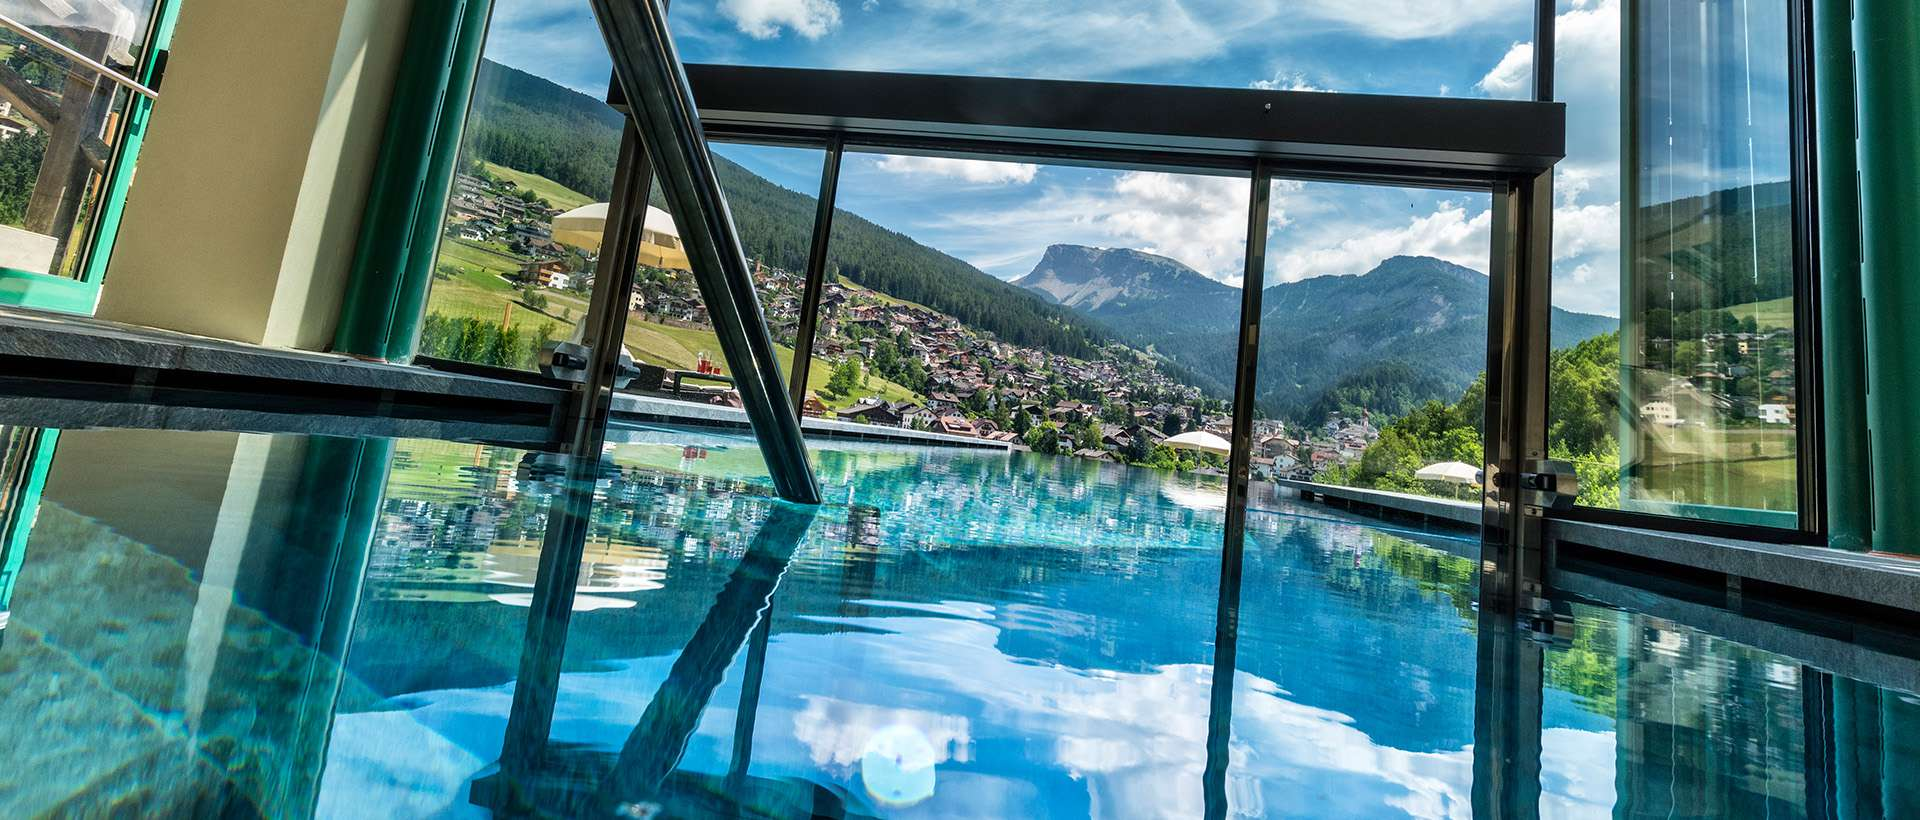 Outdoor Infinity Pool & Panorama-Hallenbad